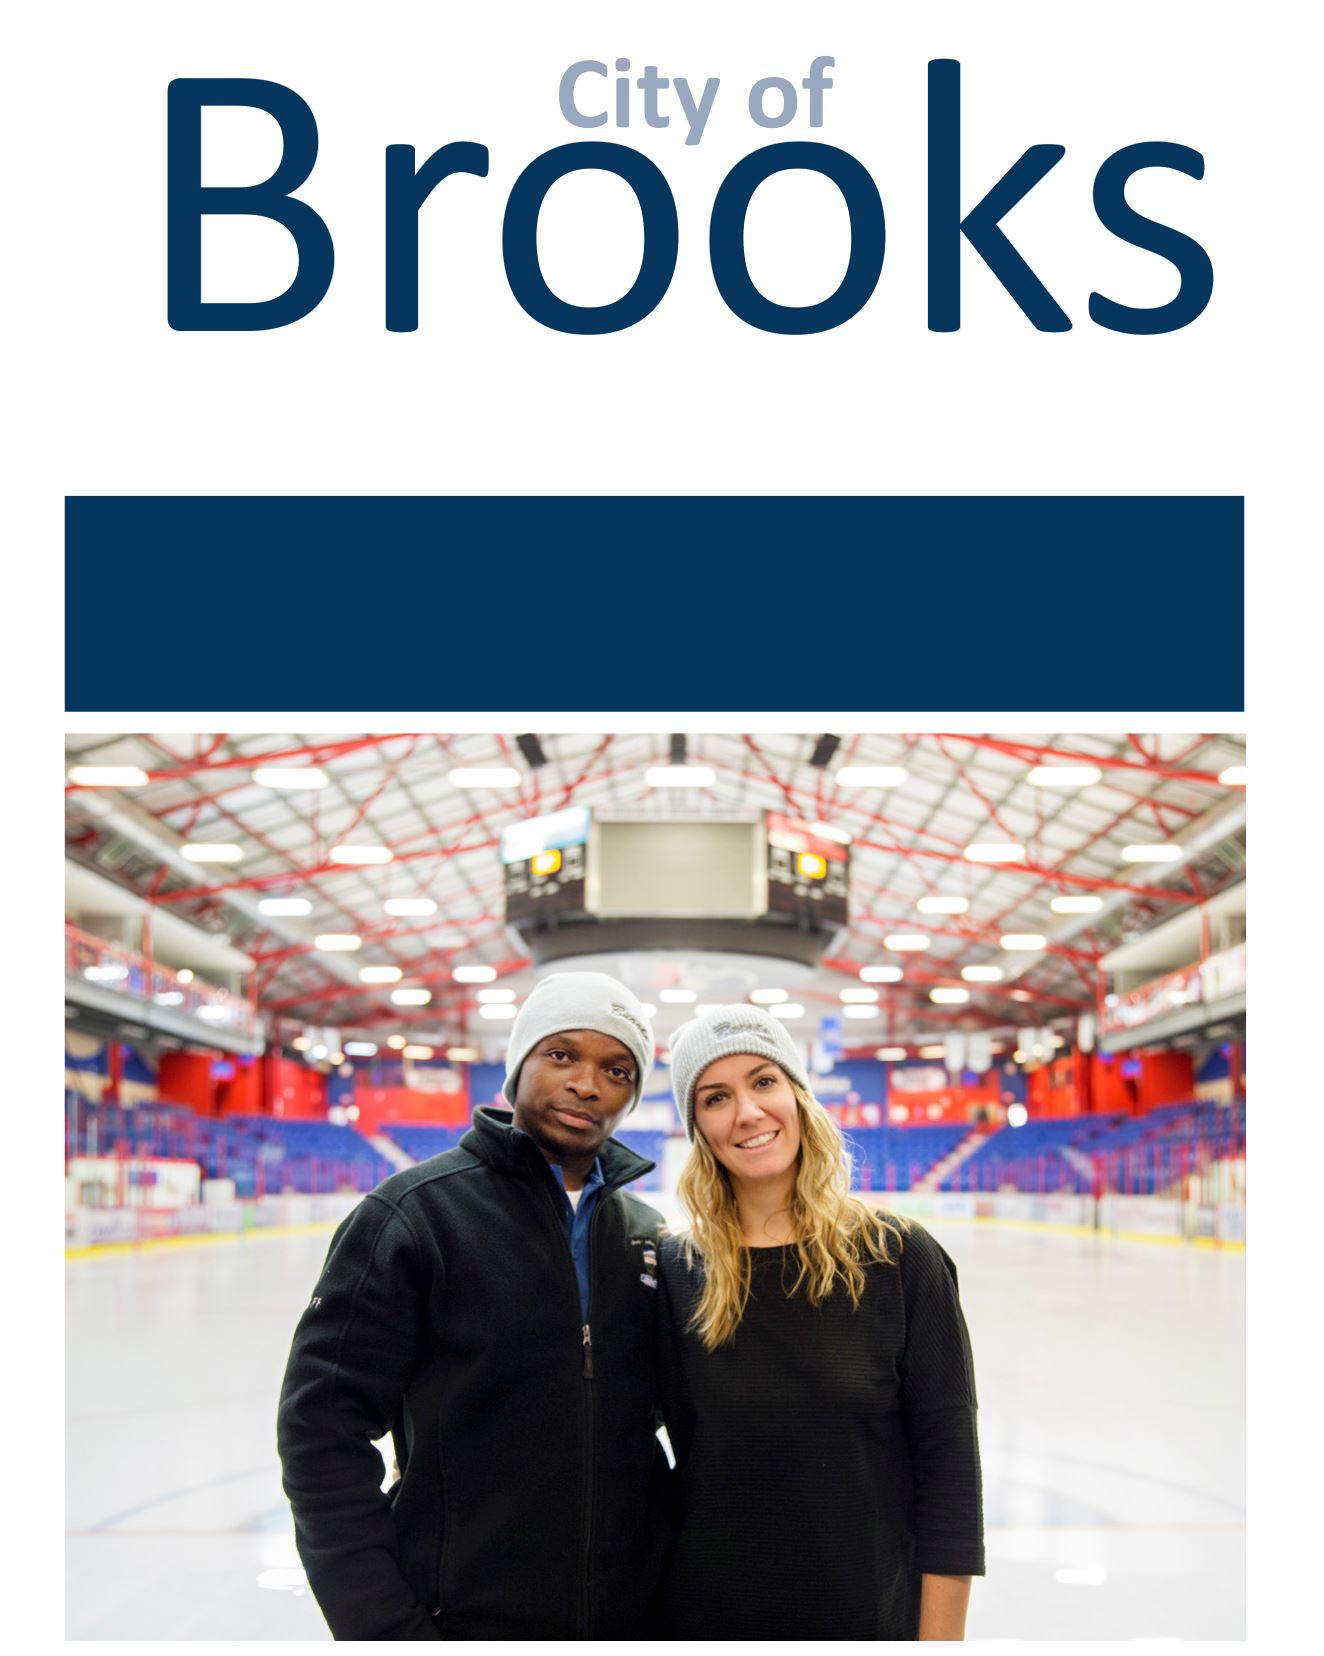 City of Brooks, two people posing in an ice rink facility